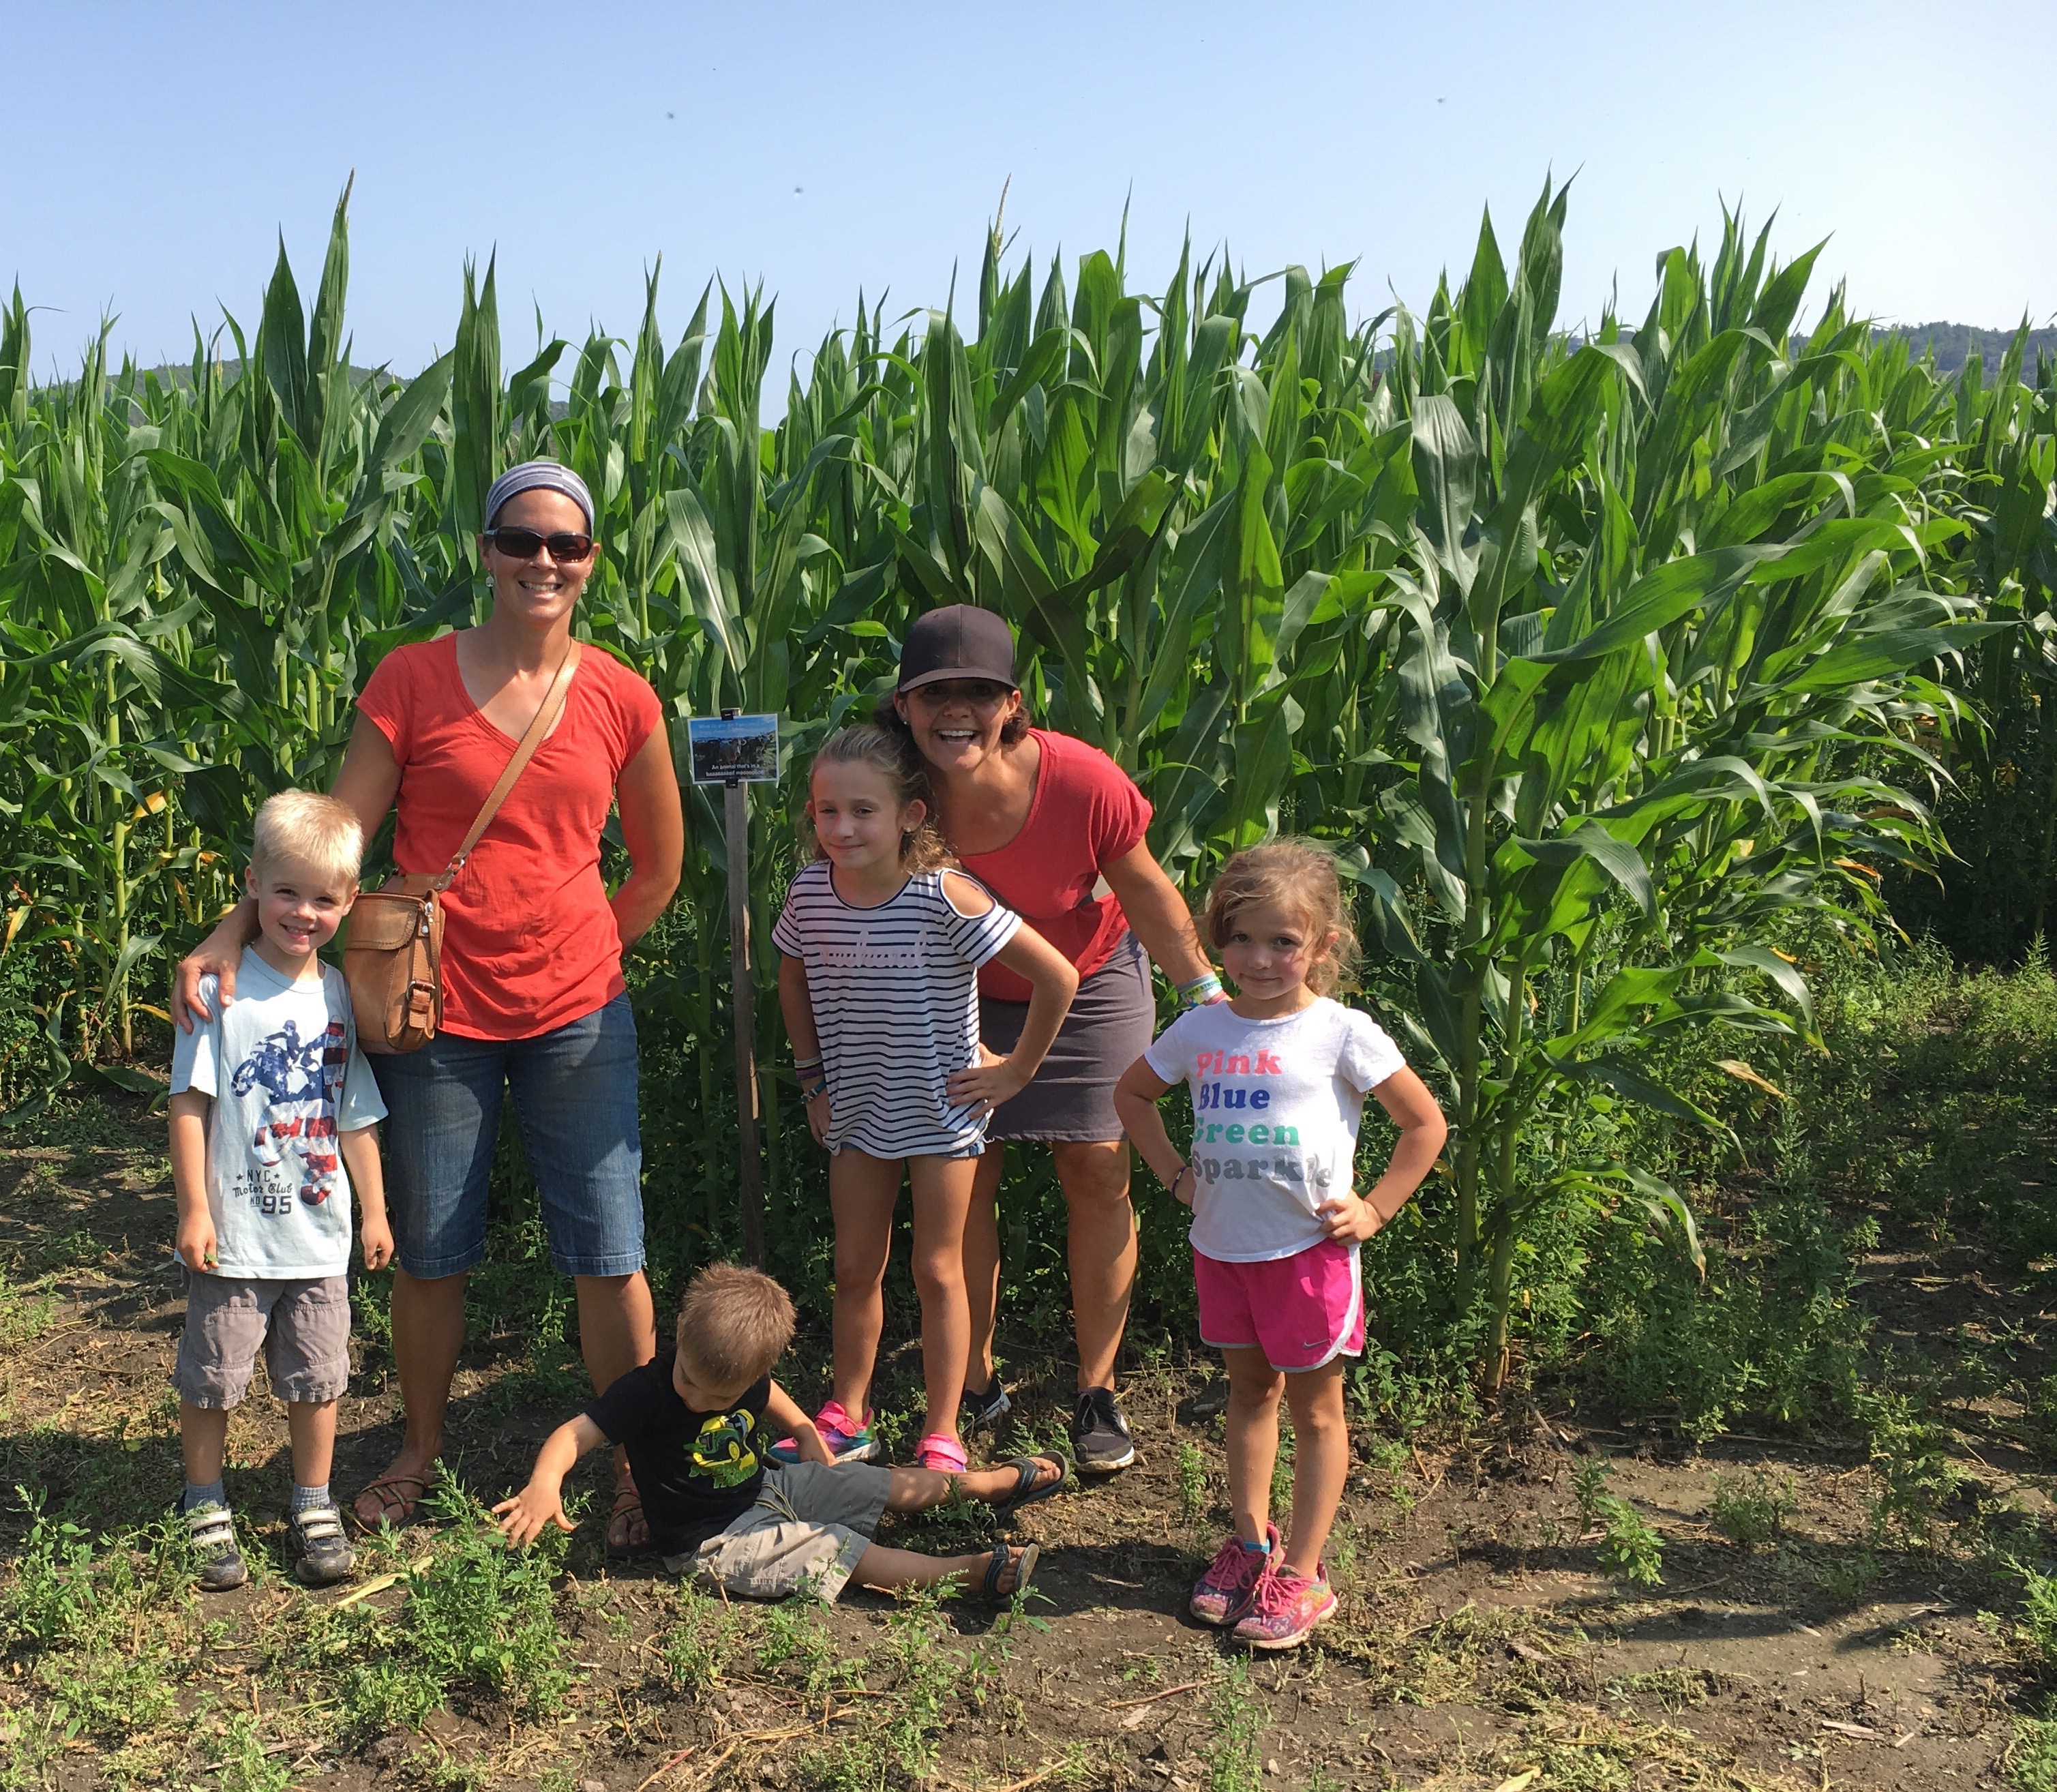 Beans & Greens Farm - cornmaze happy family